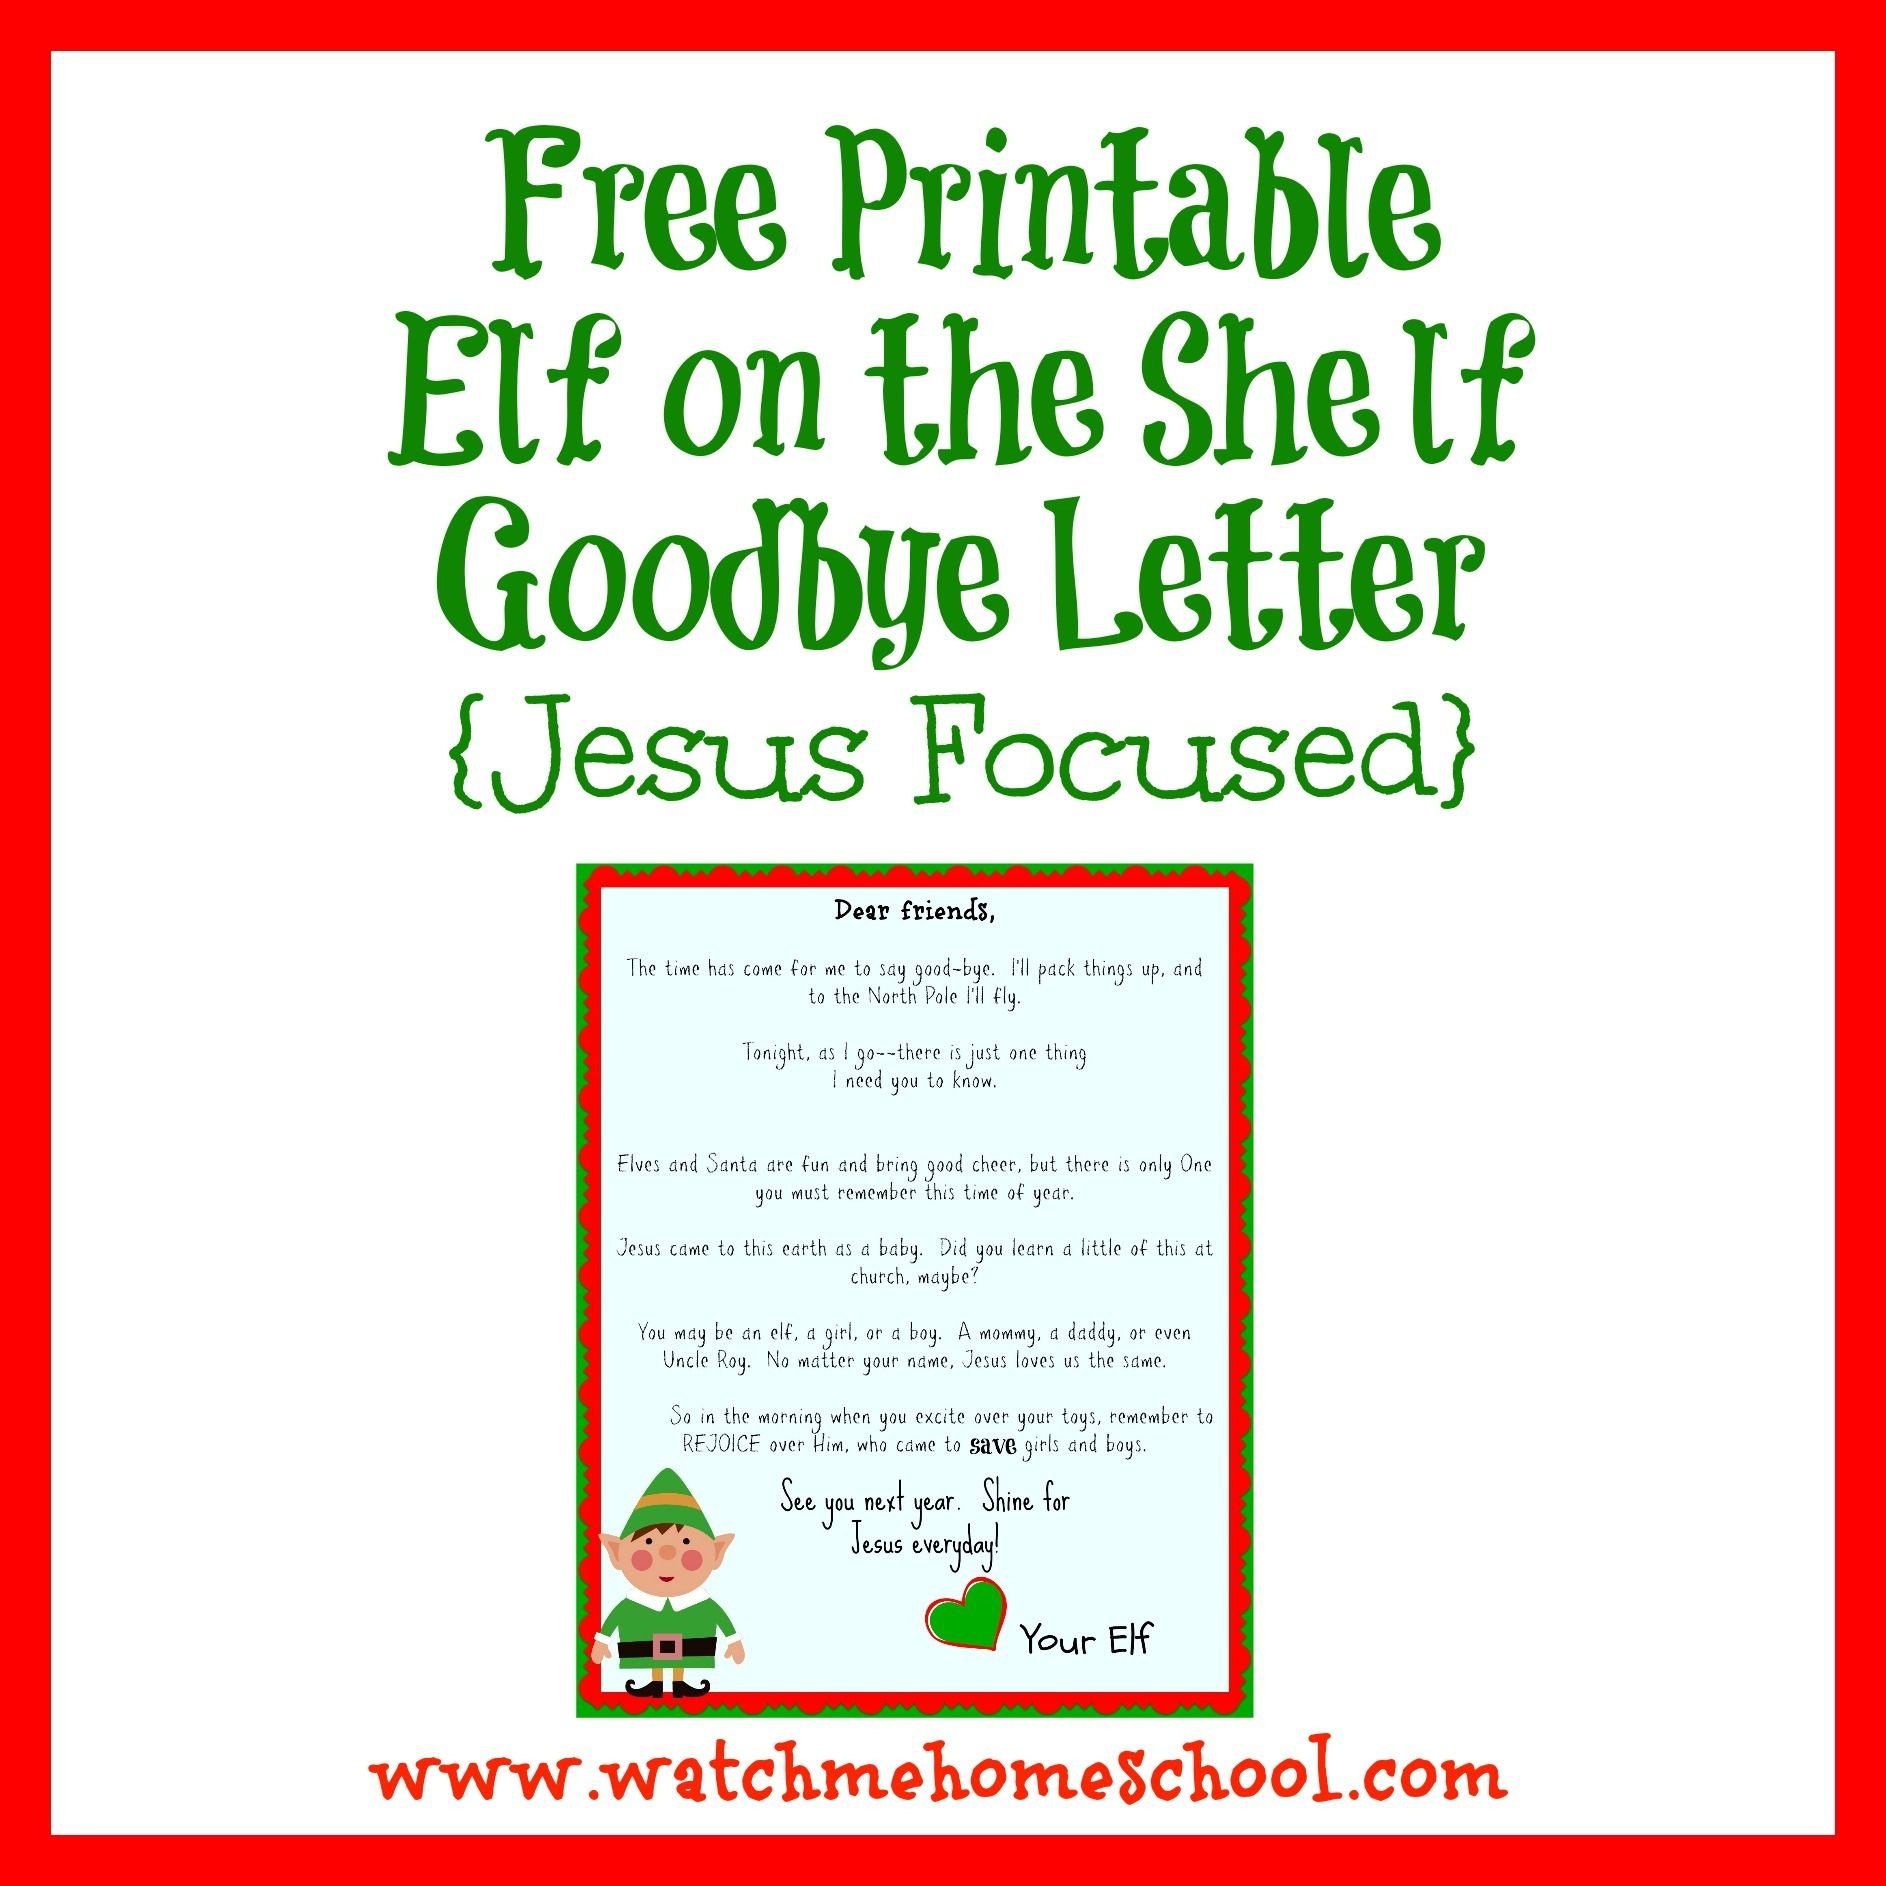 Elf On The Shelf Farewell Letter Printable | Elf On The Shelf | Elf - Elf On A Shelf Goodbye Letter Free Printable